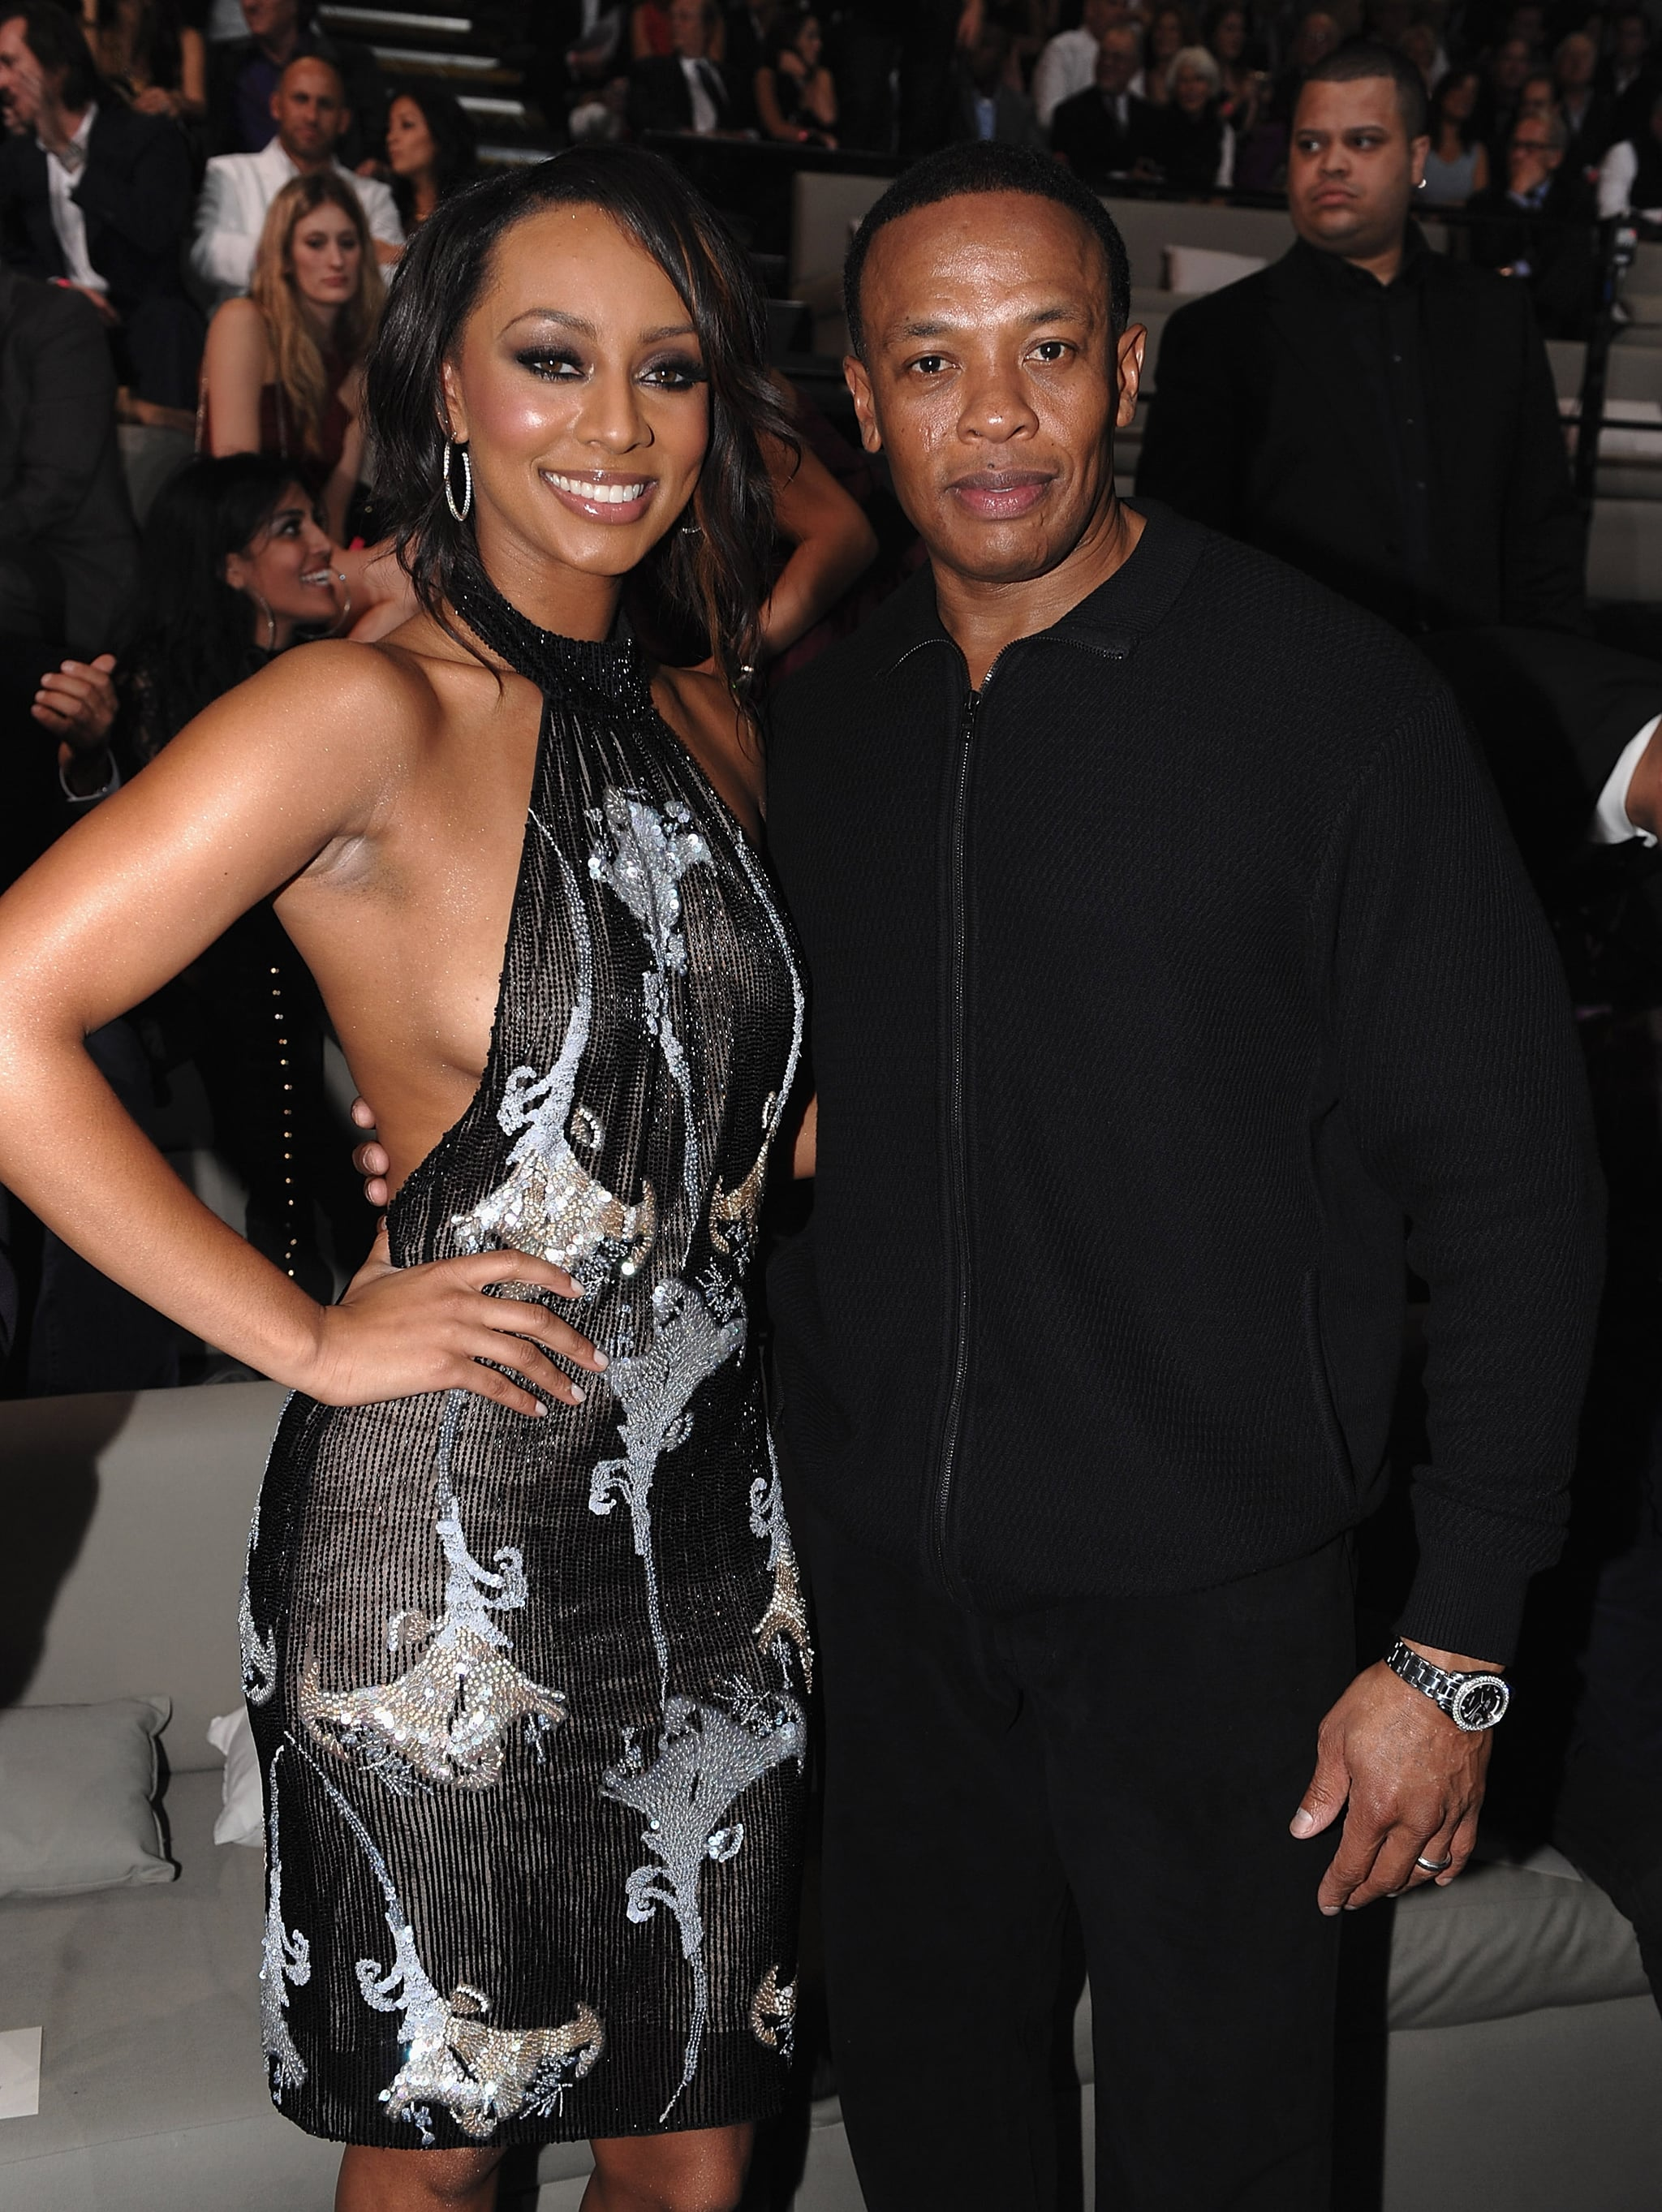 Keri Hilson and Dr. Dre attended 2009's show.